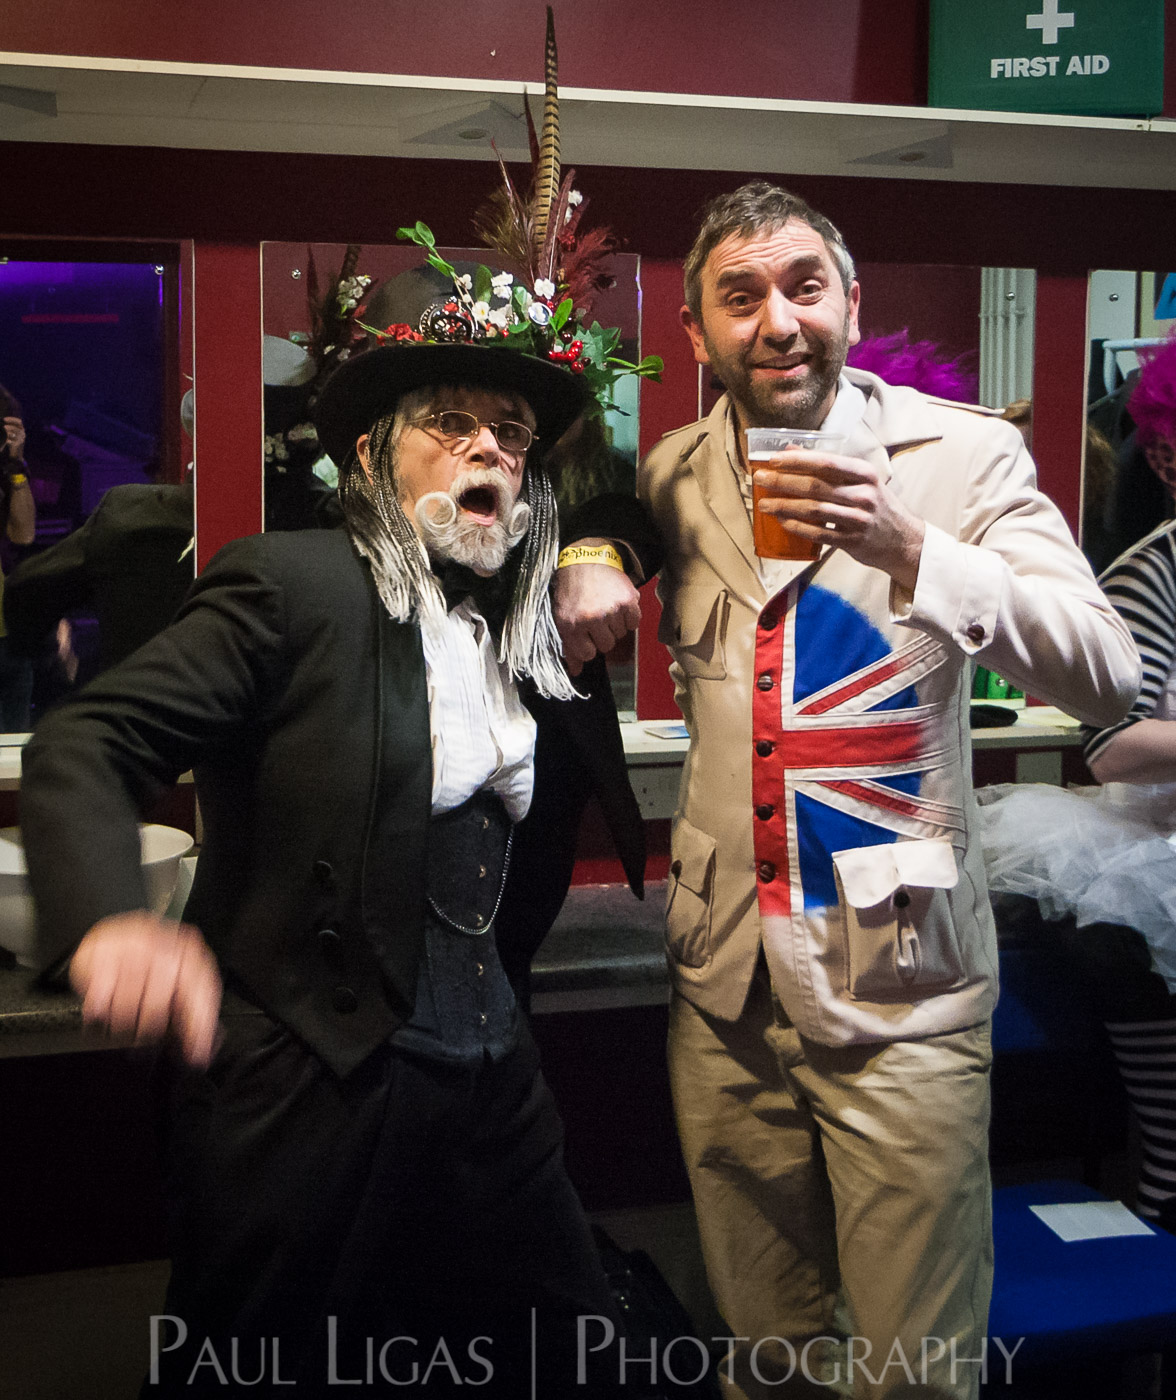 Steampunk Yule Ball 2014, event photographer photography Herefordshire music concert Professor Elemental and Lord Montague Jacques Fromage 6588